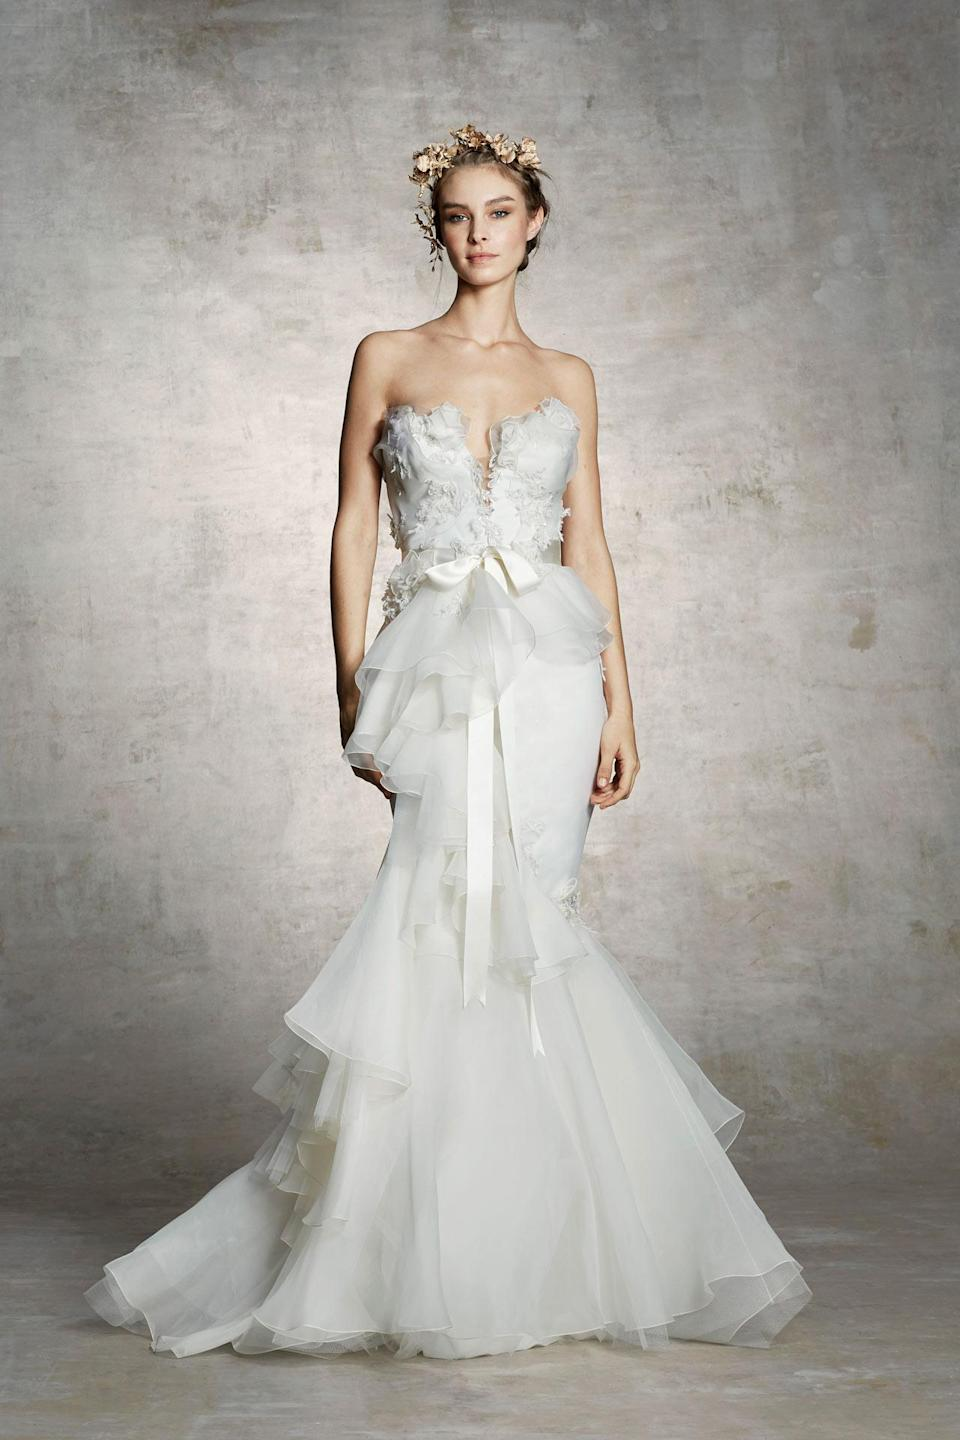 <p>Strapless gown with bow-tie sash and cascading ruffles. (Photo: Courtesy of Marchesa) </p>